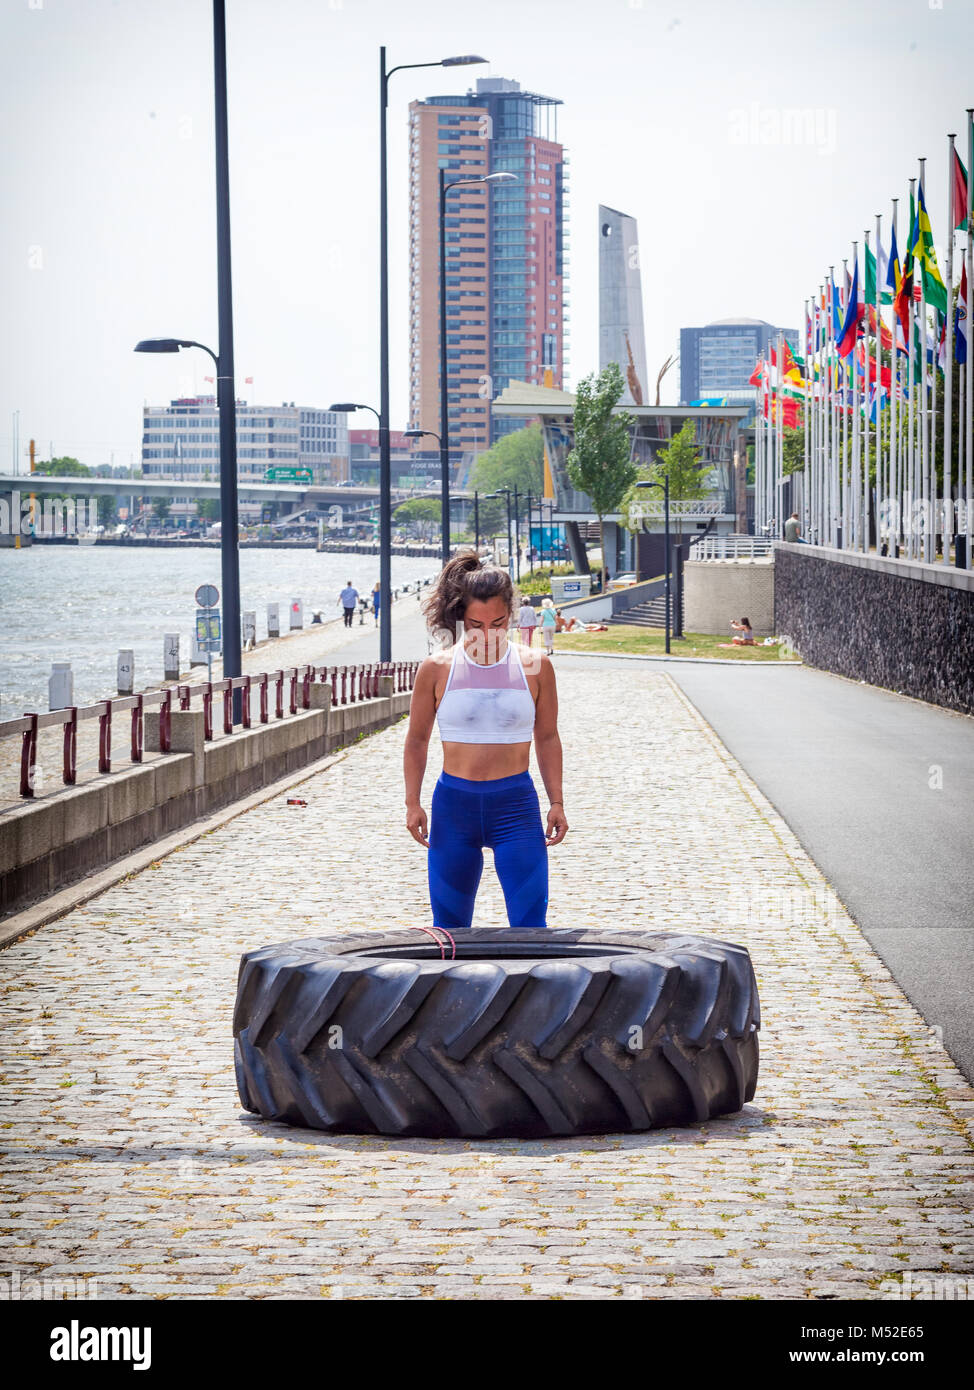 Photo of an attractive young woman working out with a tractor tire in Rotterdam, The Netherlands - Stock Image